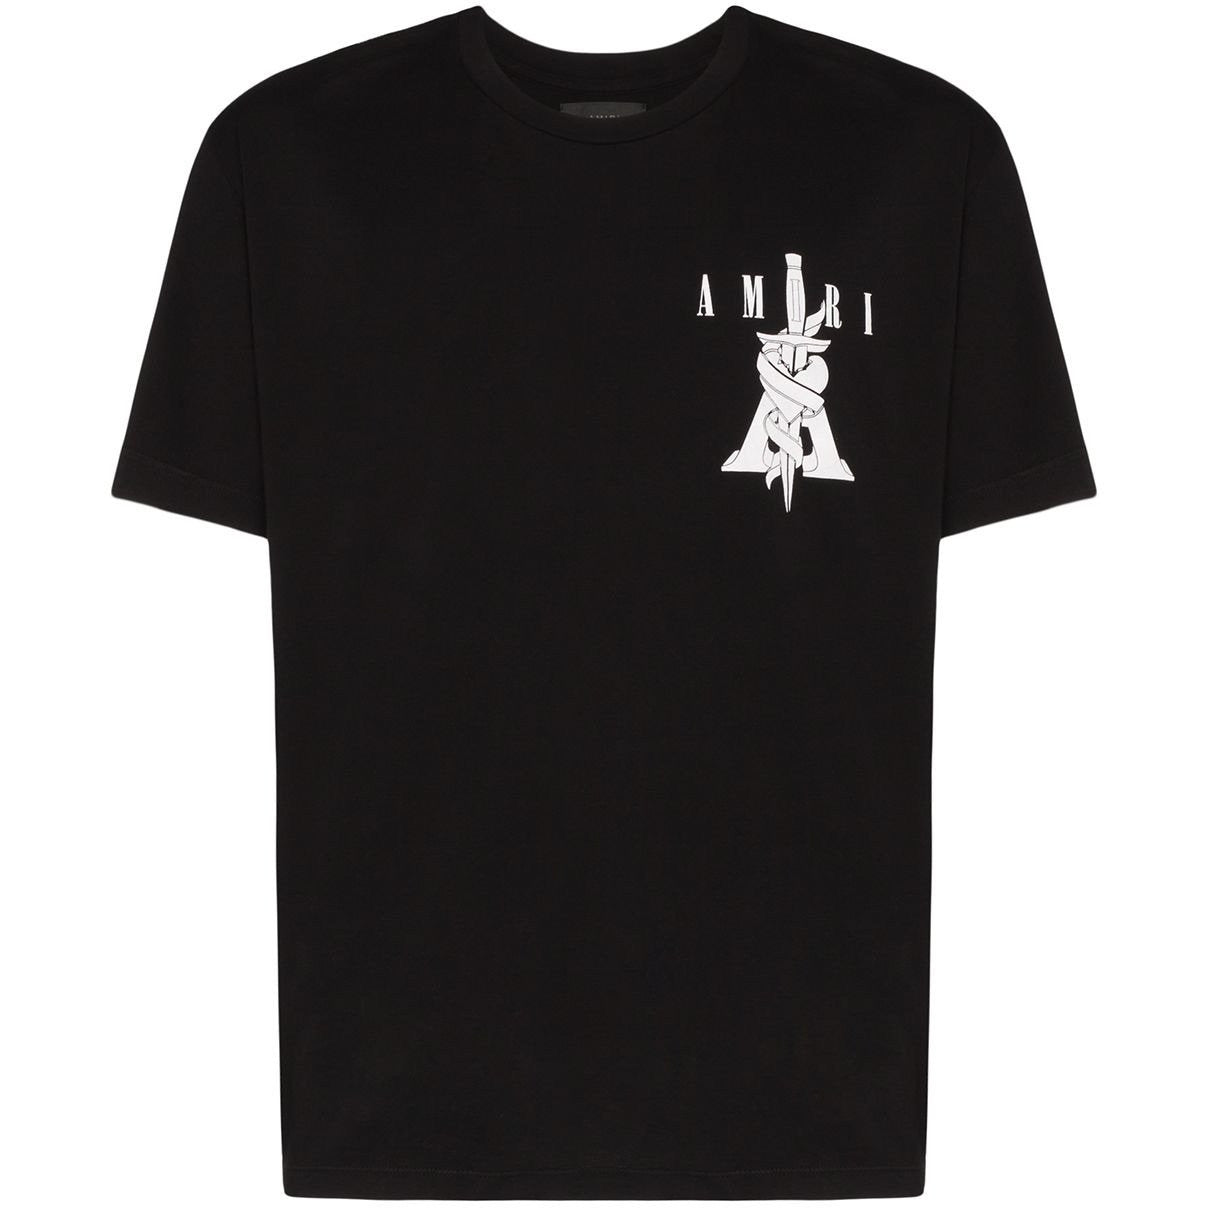 Amiri Graphic Logo Print T-shirt (Black)